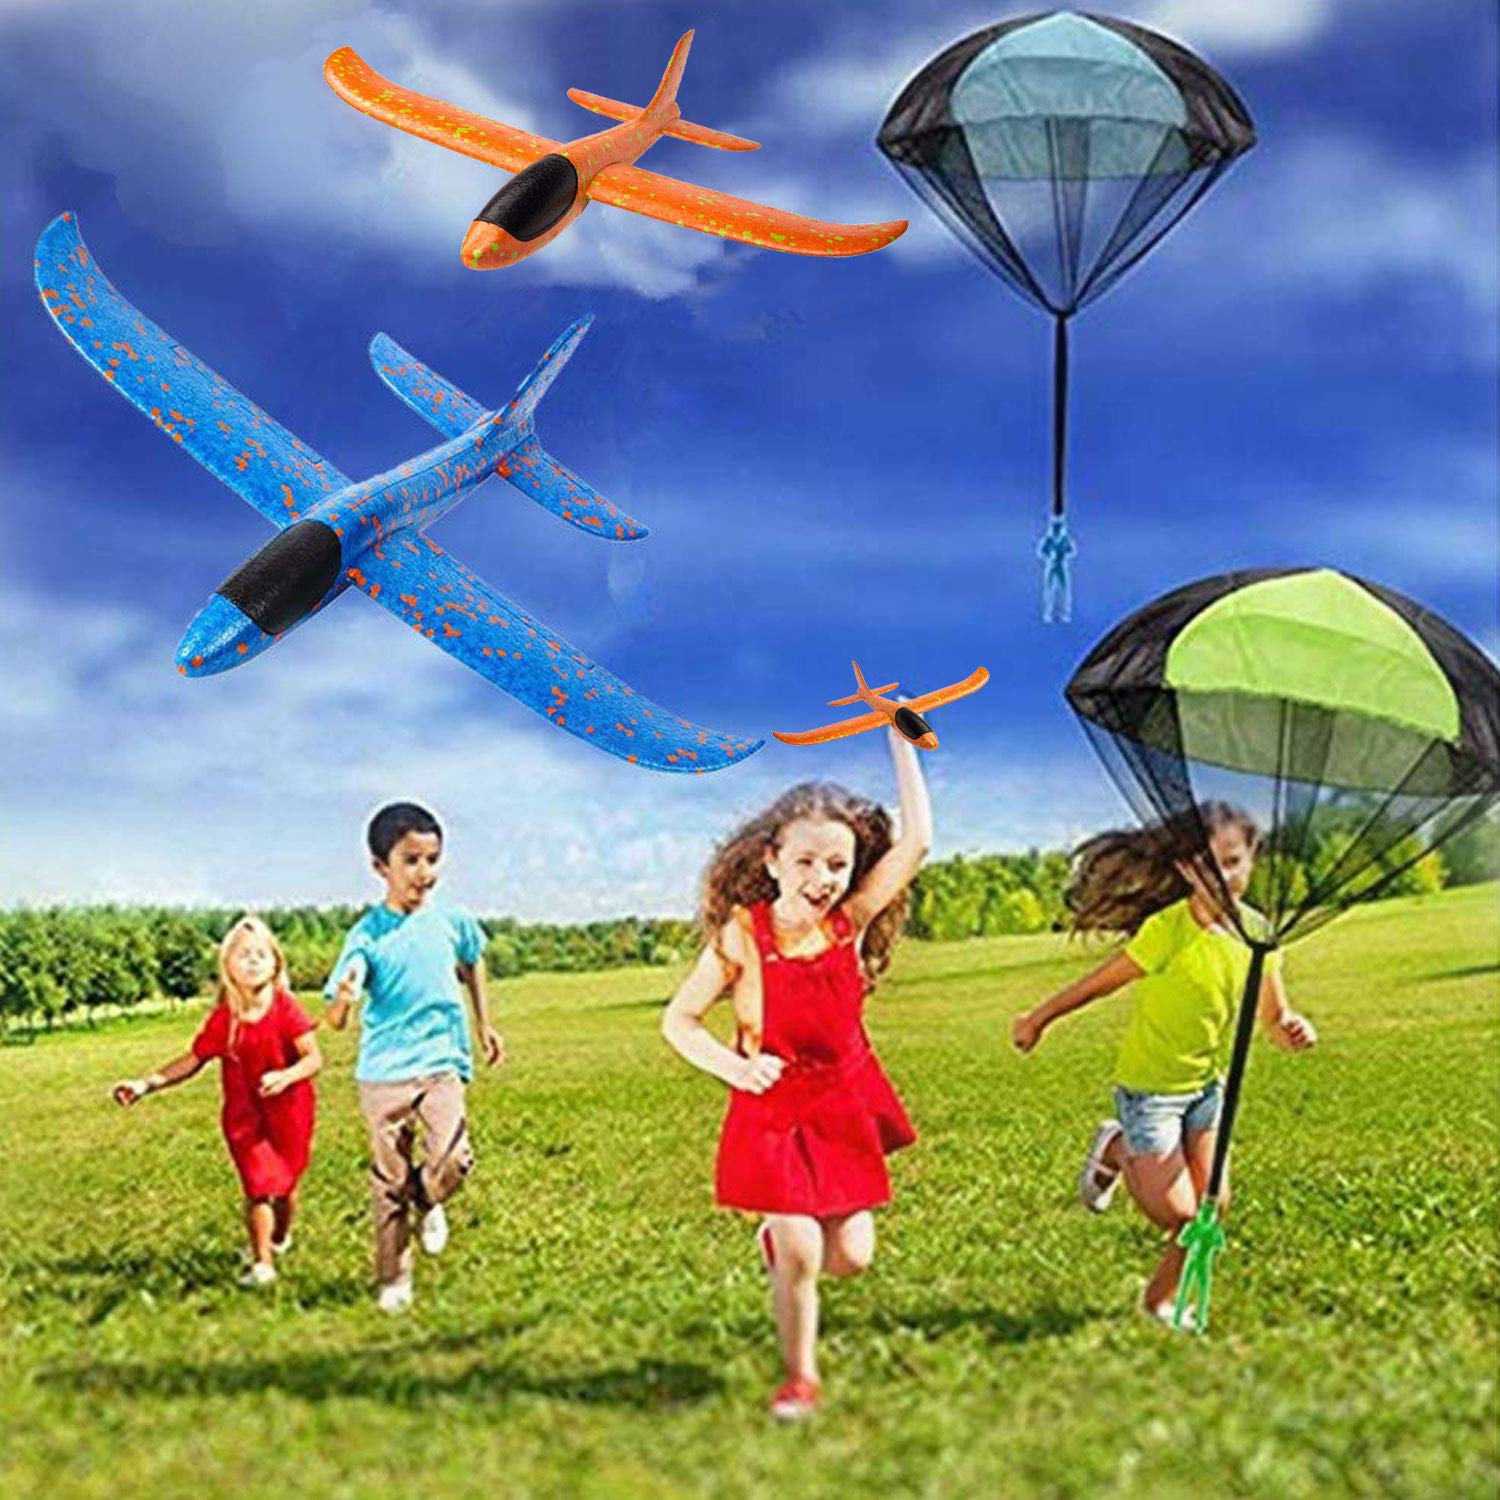 7 Pack Toy Airplane Glider for Kids, 2P 13.5'' Inch Throwing Foam Plane Kit Aircraft Jet+5P Toy Parachute Tangle Free Throwing, Outdoor Sports Flying Toys for Boys Girls Toddlers Teens Birthday Gift by iGeeKid (Image #2)